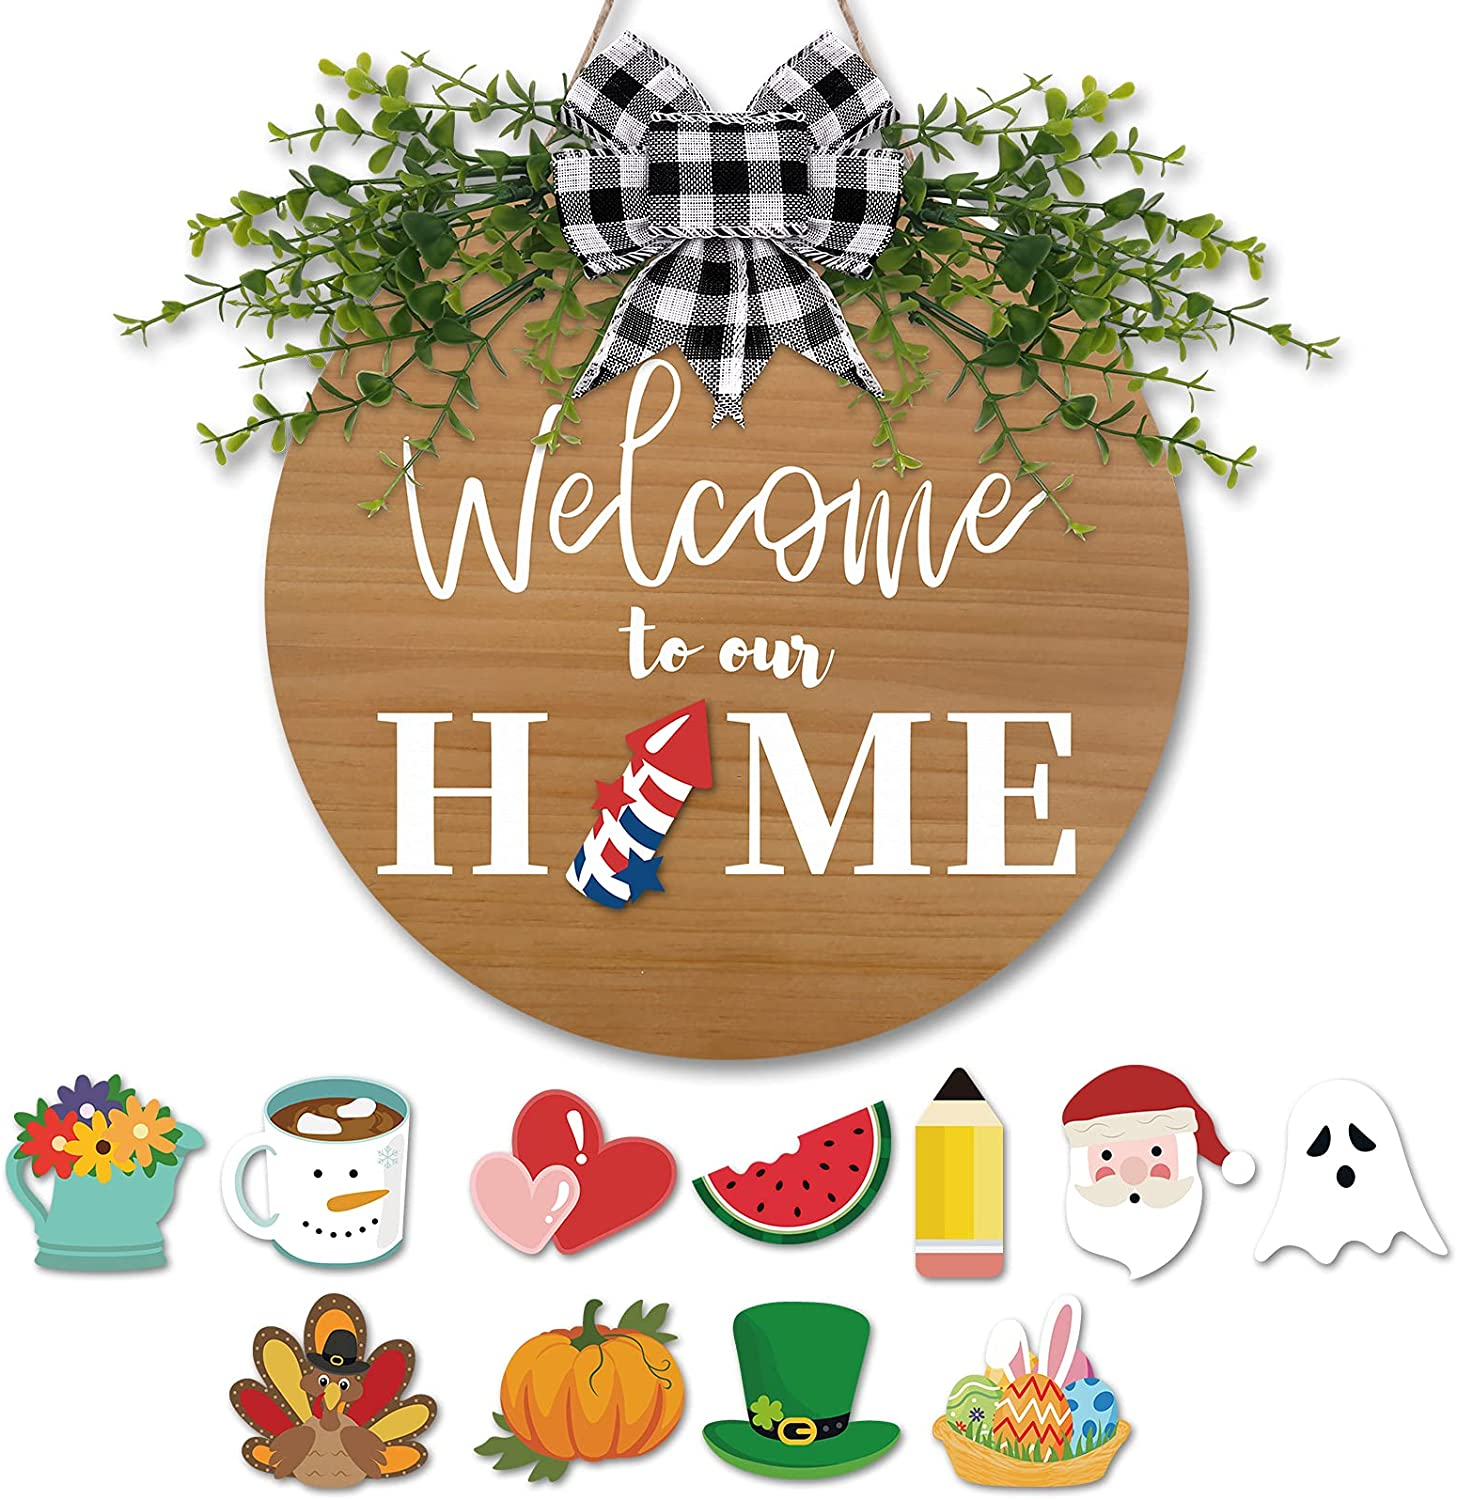 4th of July Farmhouse Welcome Home Door Sign Wooden Rustic Front Door Decoration Seasonal Round Door Hanger Farmhouse Porch Home Wreath Sign with Buffalo Plaid Decor 12 Inches Brown